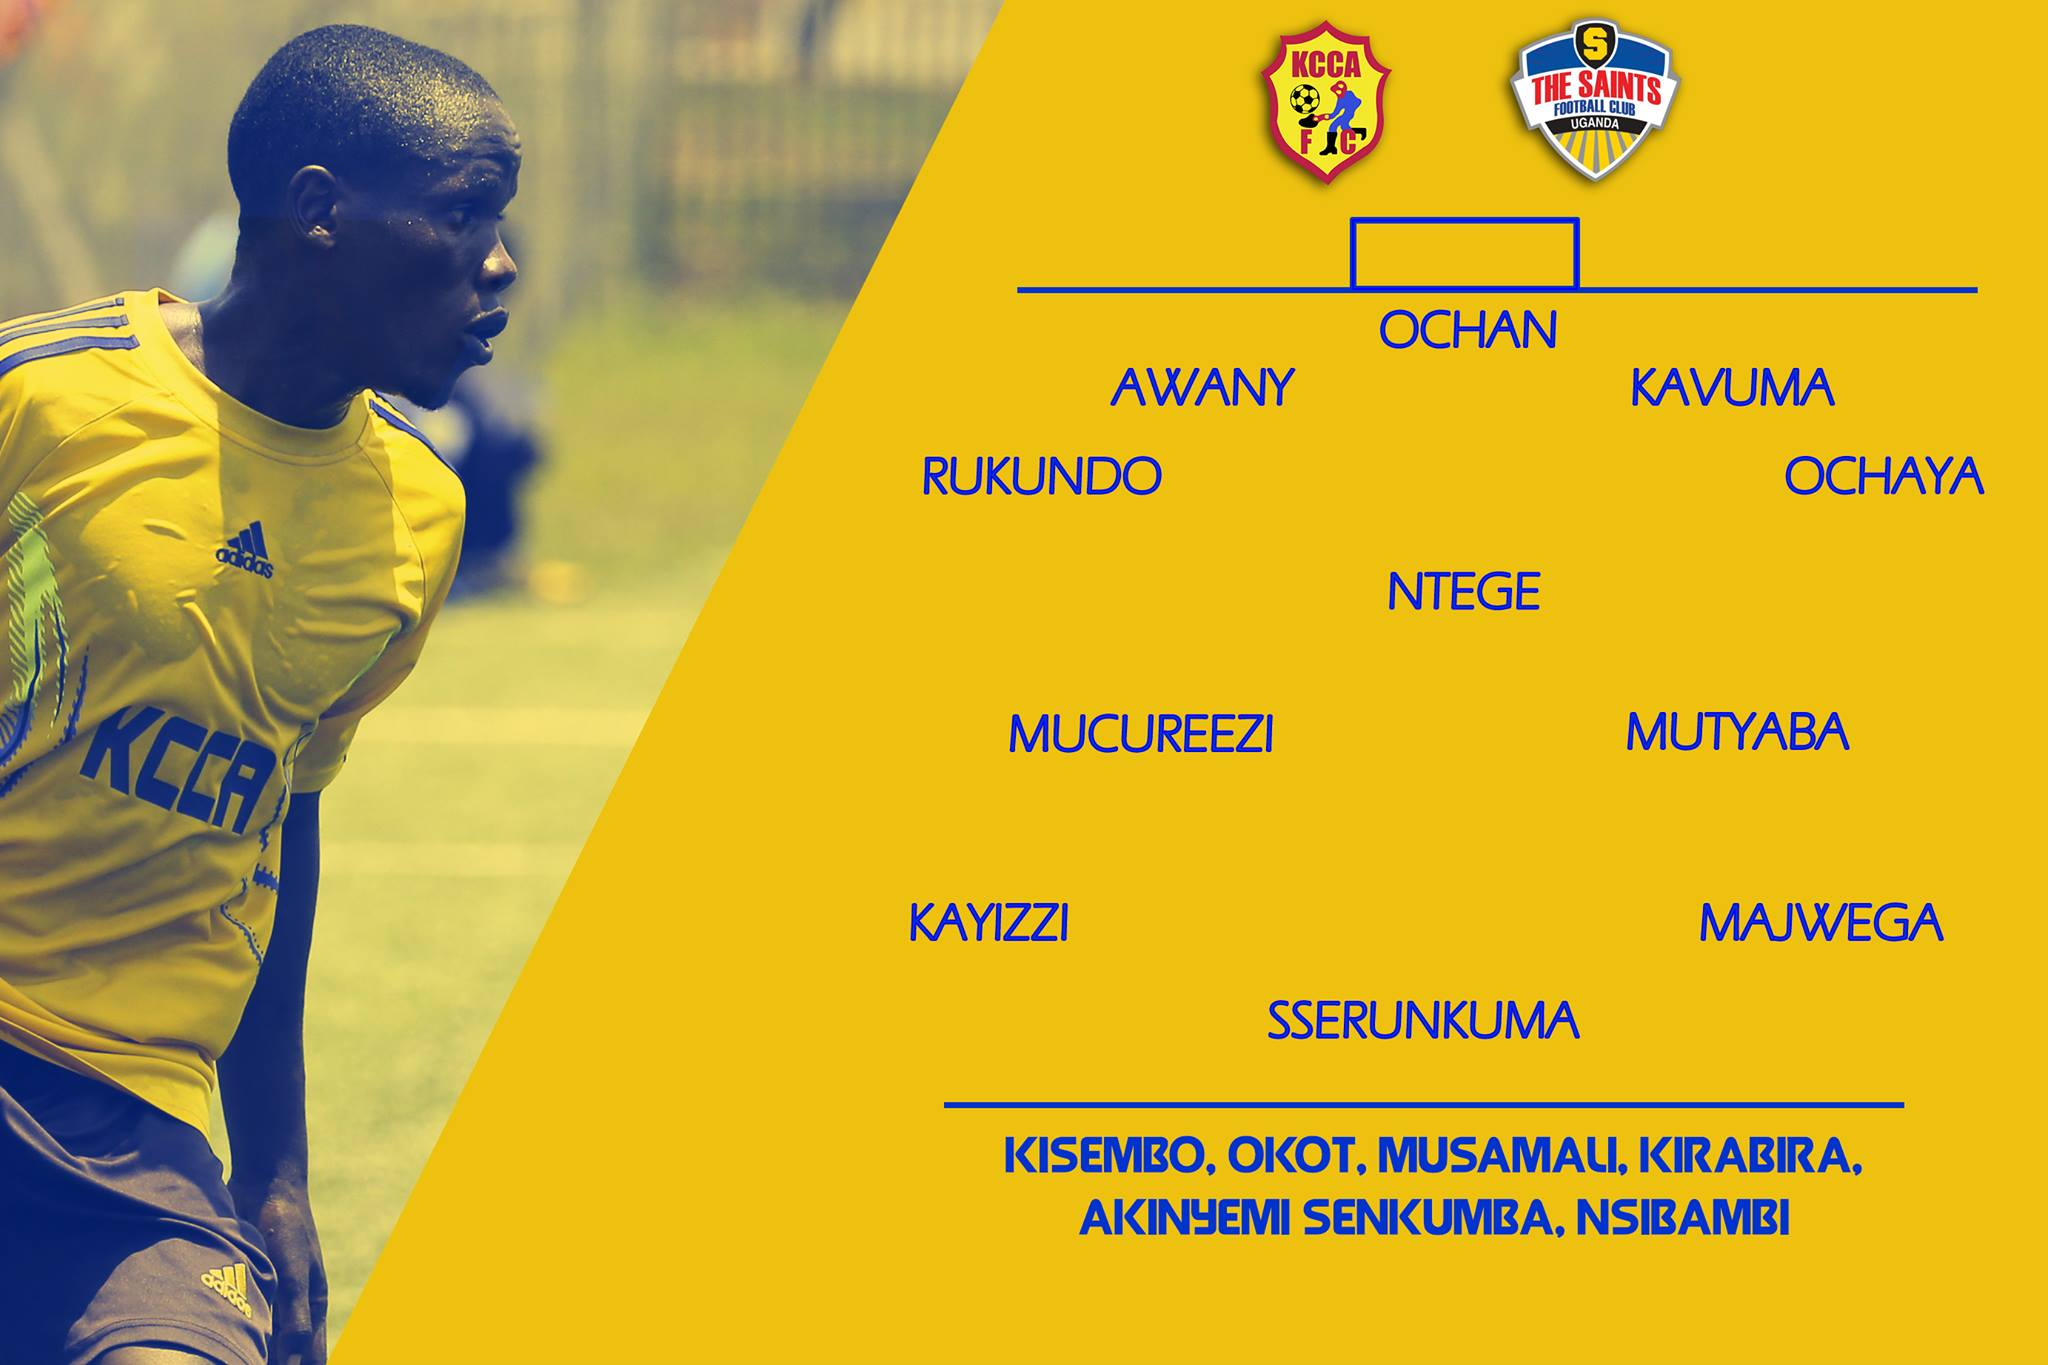 The line-up of KCCA today